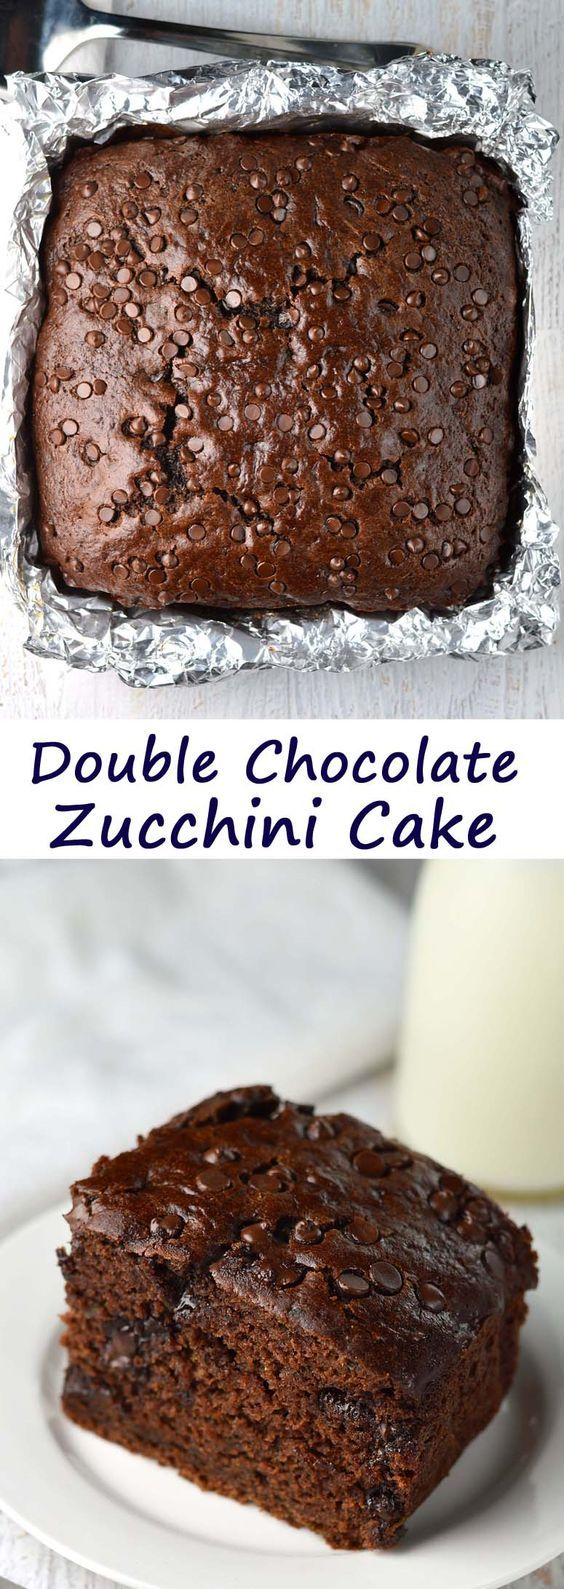 Double Chocolate Zucchini Cake. Half the oil but no one will know!